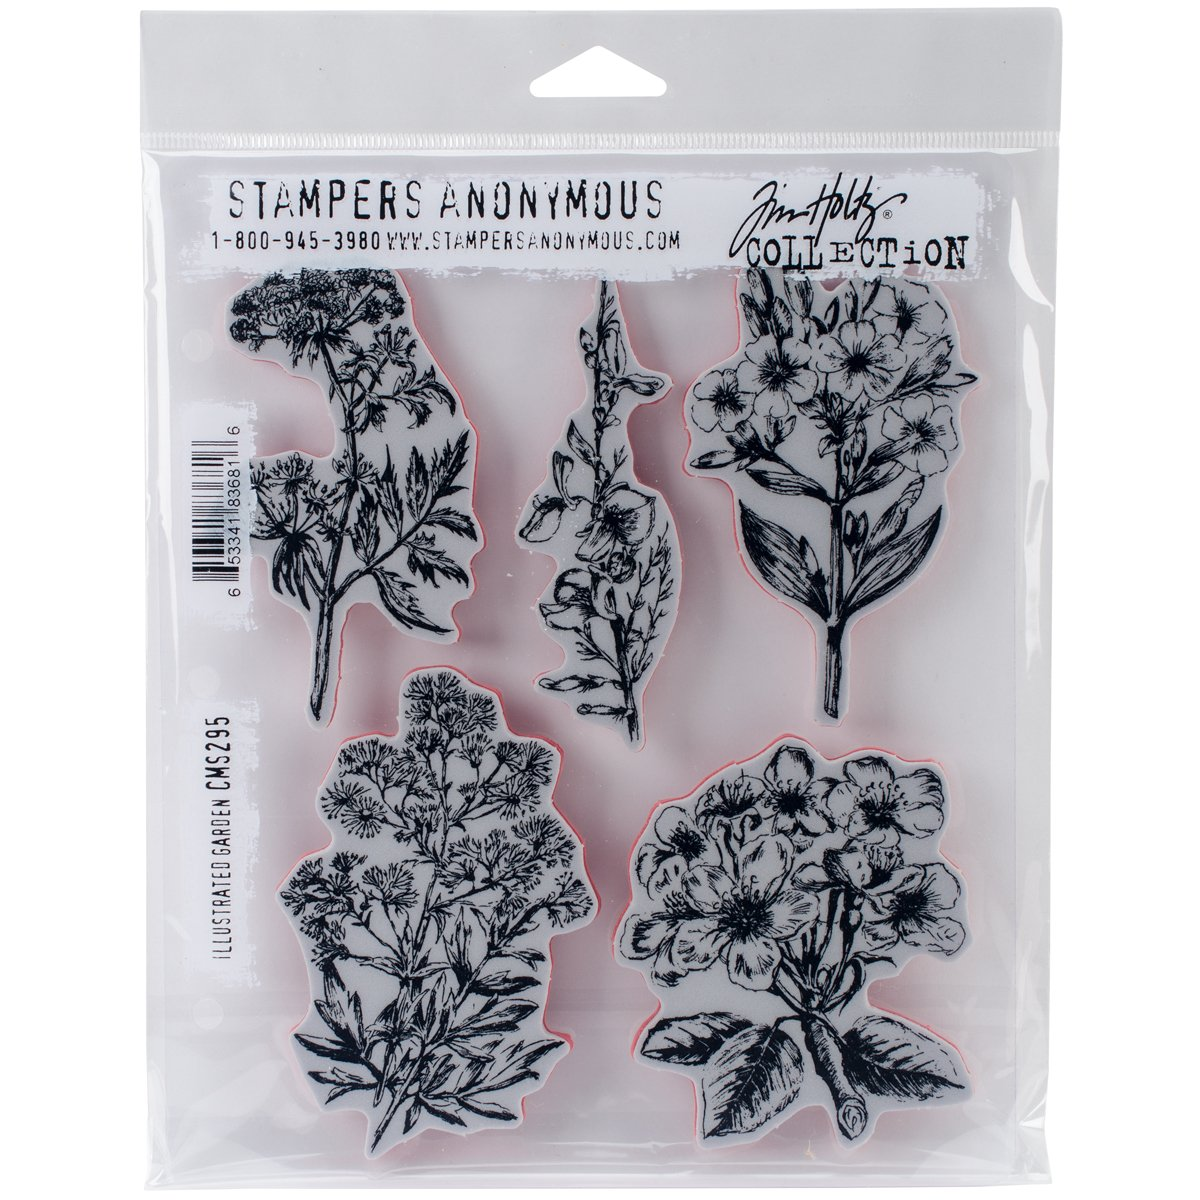 Tim Holtz Cling Stamps 7X8.5-Illustrated Garden